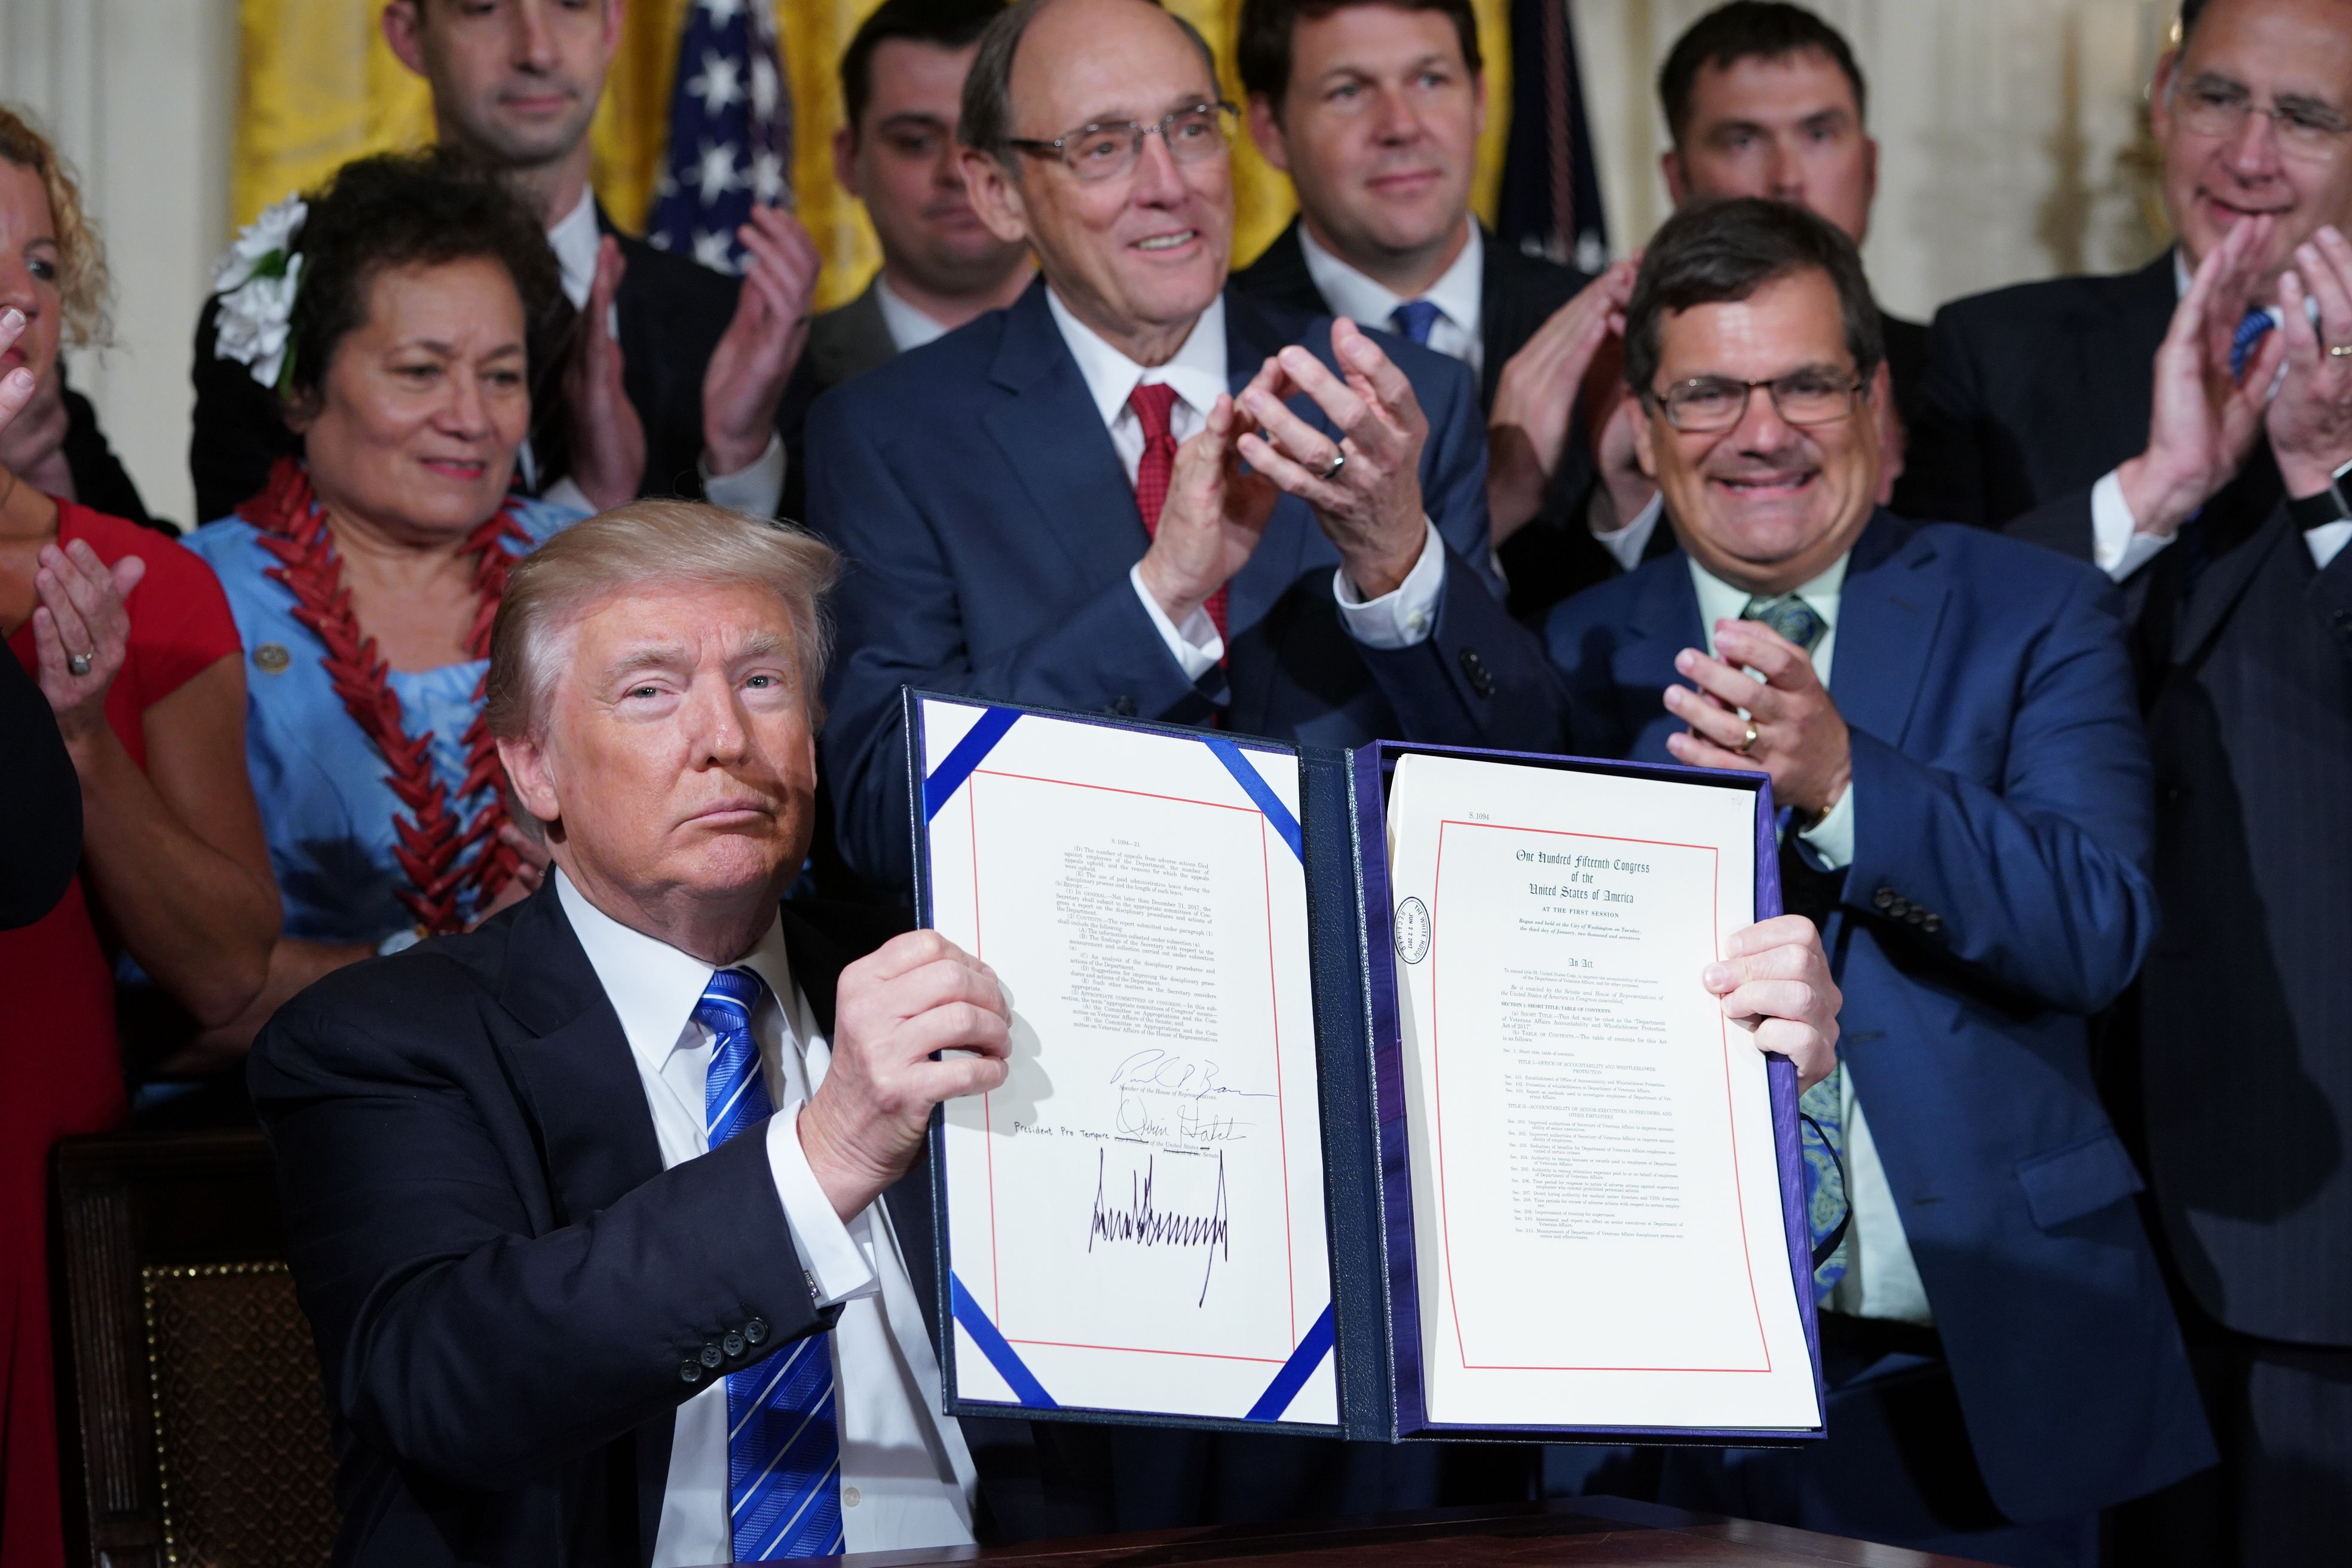 US President Donald Trump holds up the bill after signing the Department of Veterans Affairs Accountability and Whistleblower Protection Act of 2017, on June 23, 2017, in the East Room of the White House in Washington, DC.